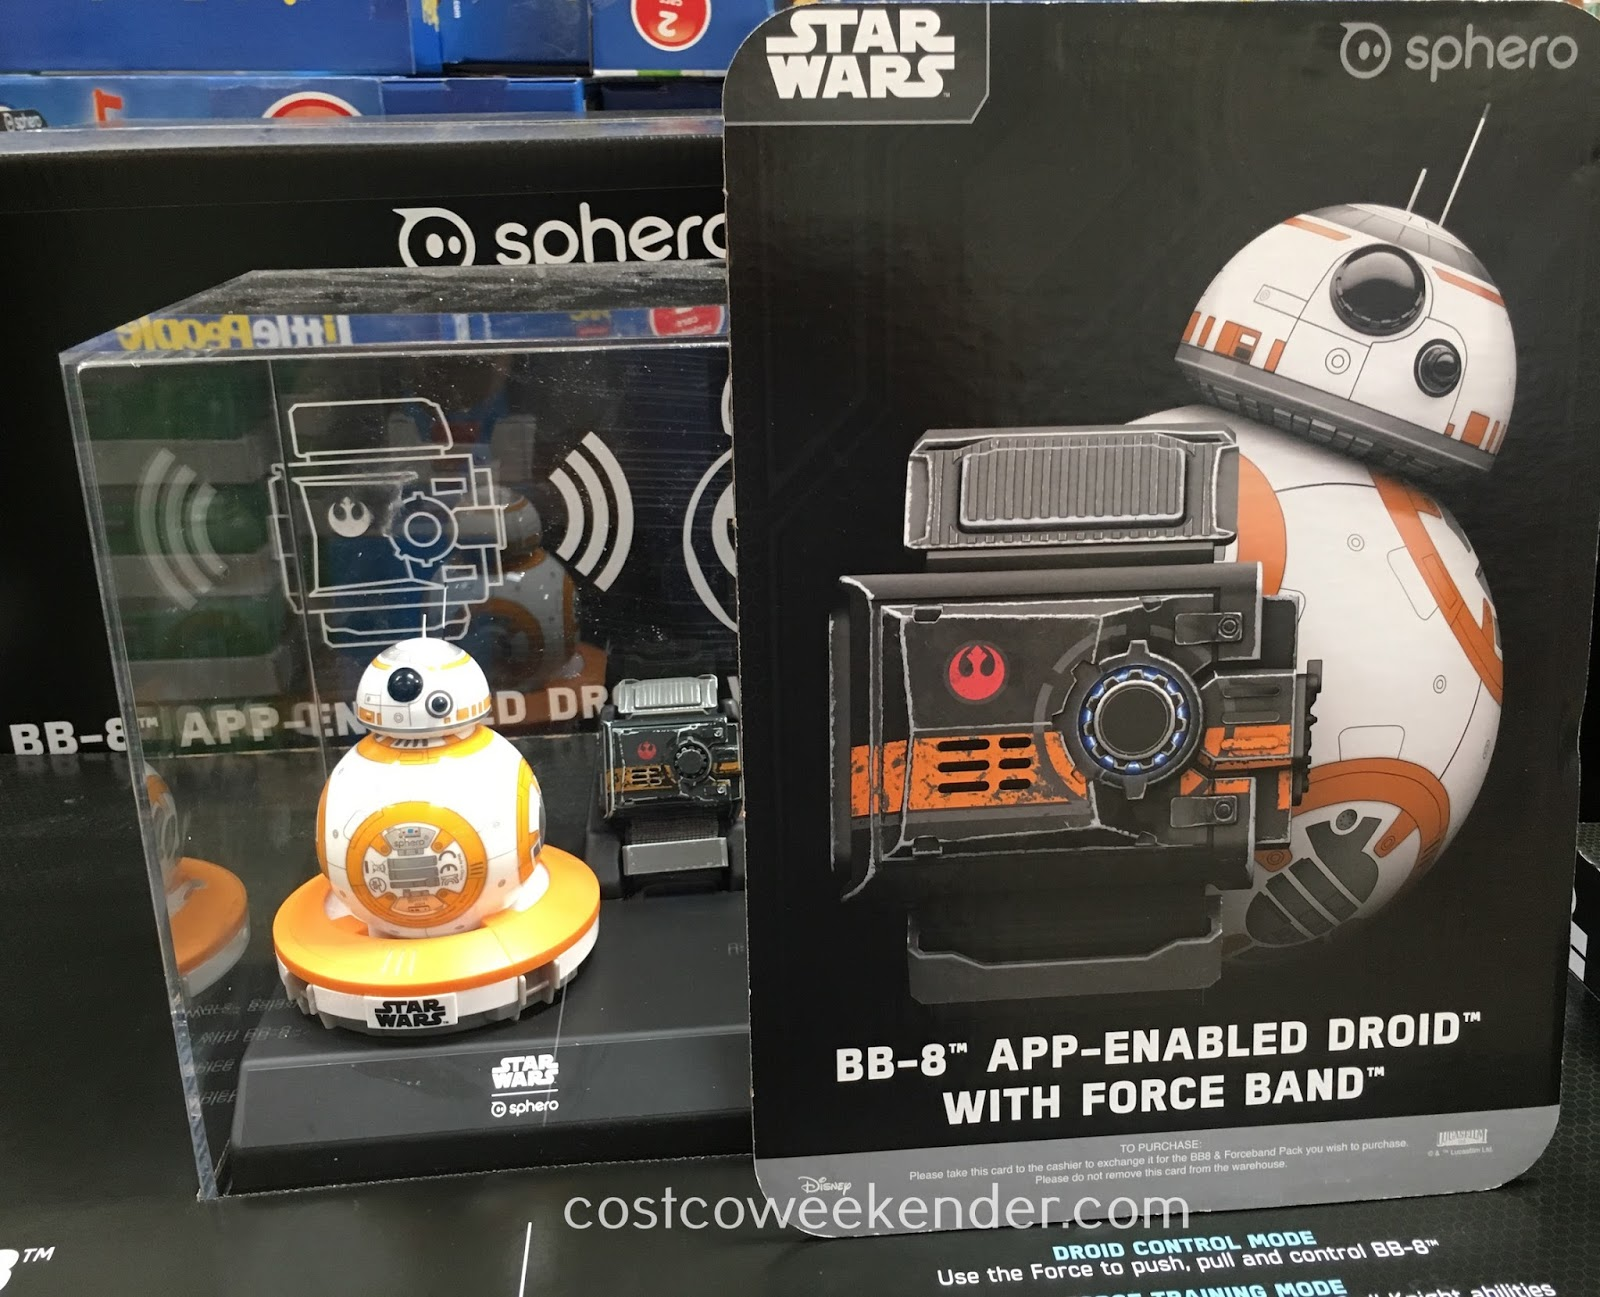 Control the Sphero Star Wars BB-8 App-Enabled Droid with Force Band to help defeat the Empire